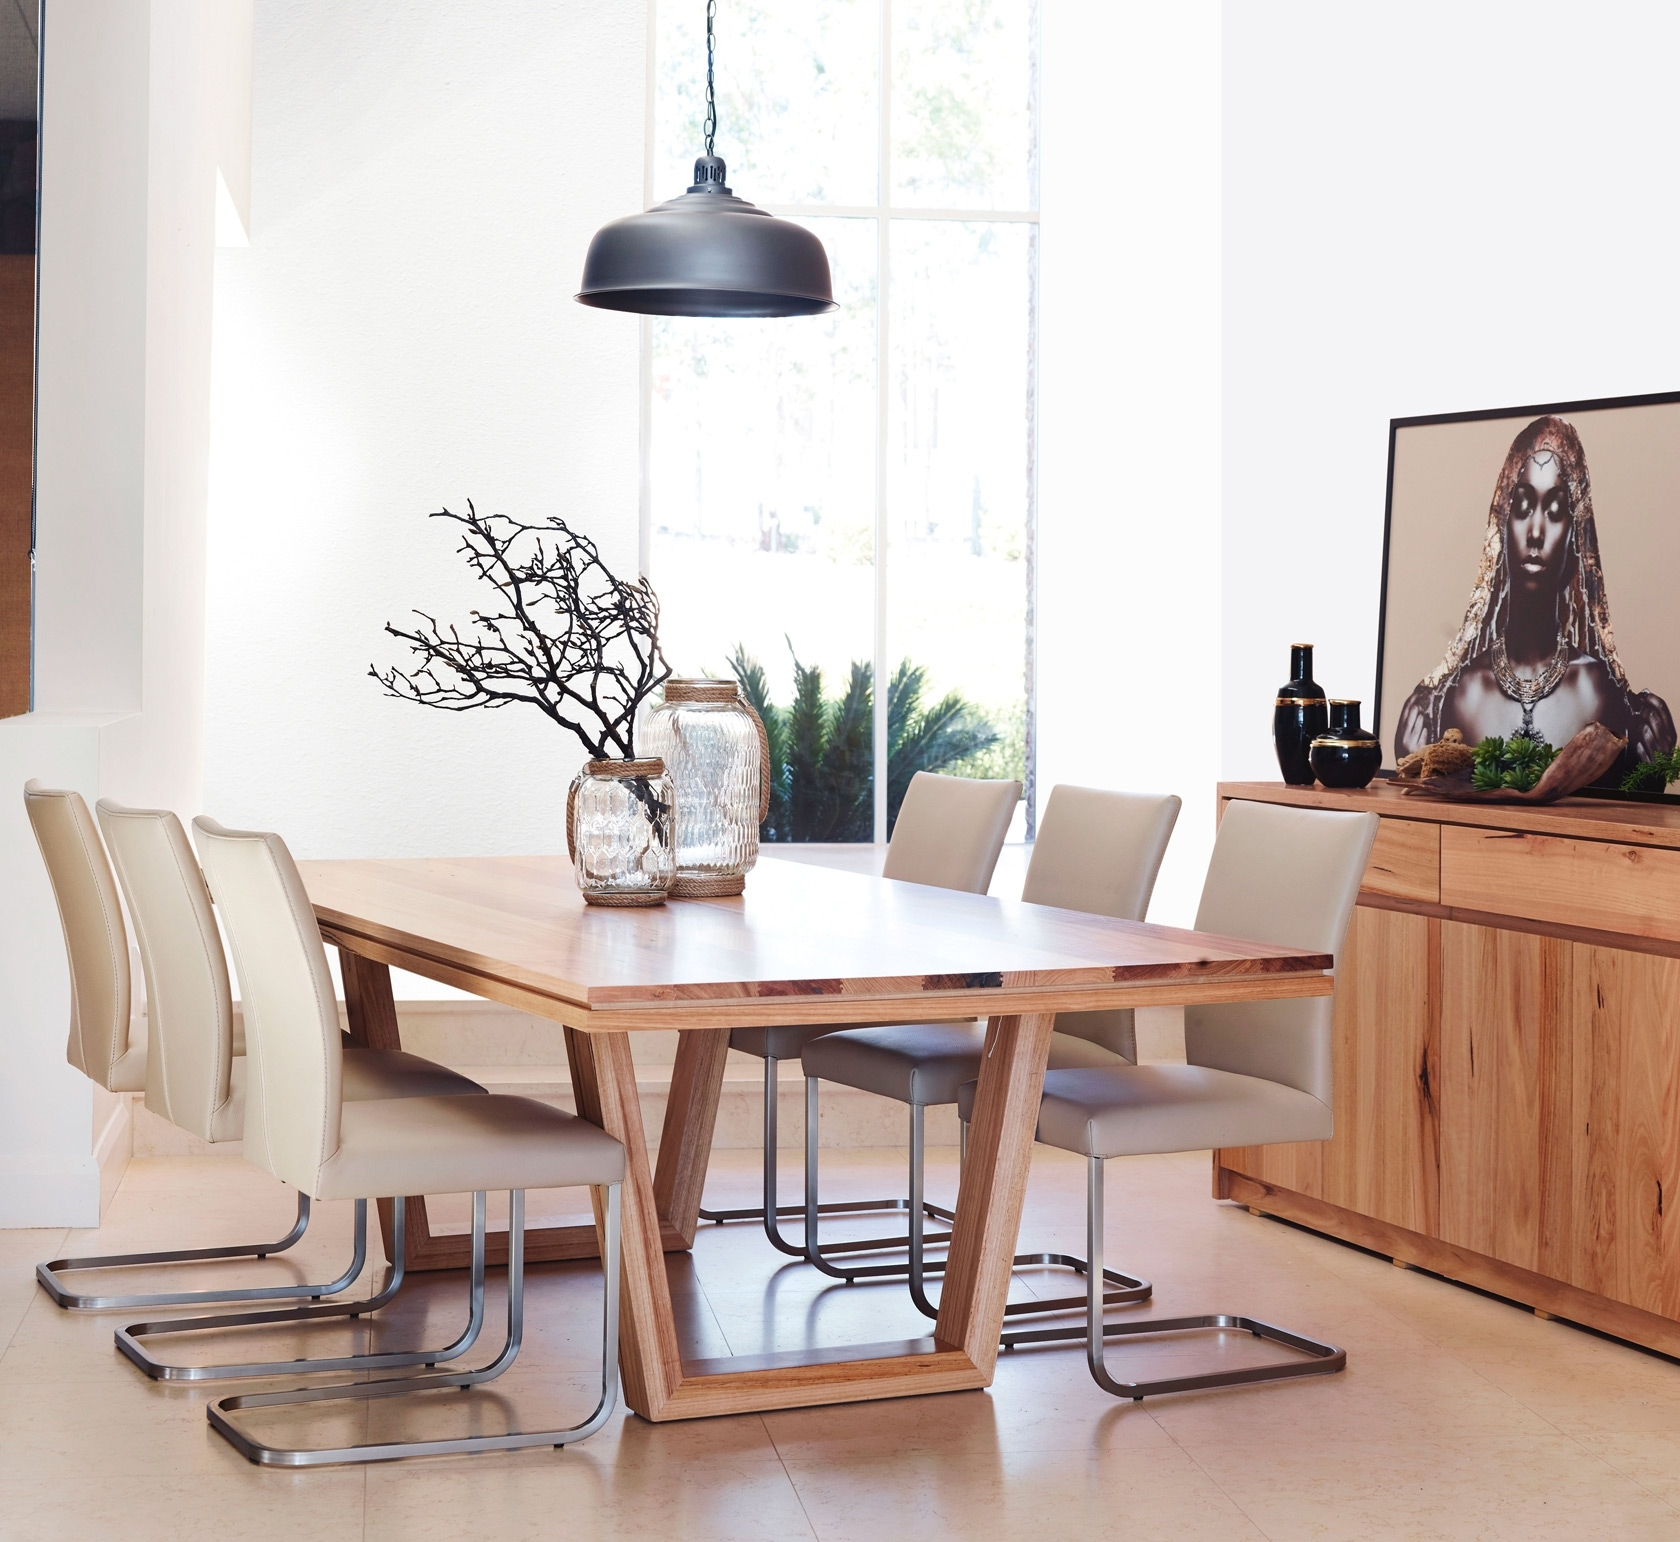 Harvey Dining Tables Regarding Widely Used Your Home, Your Style: Choose From Our Top 5 Looks (View 3 of 25)